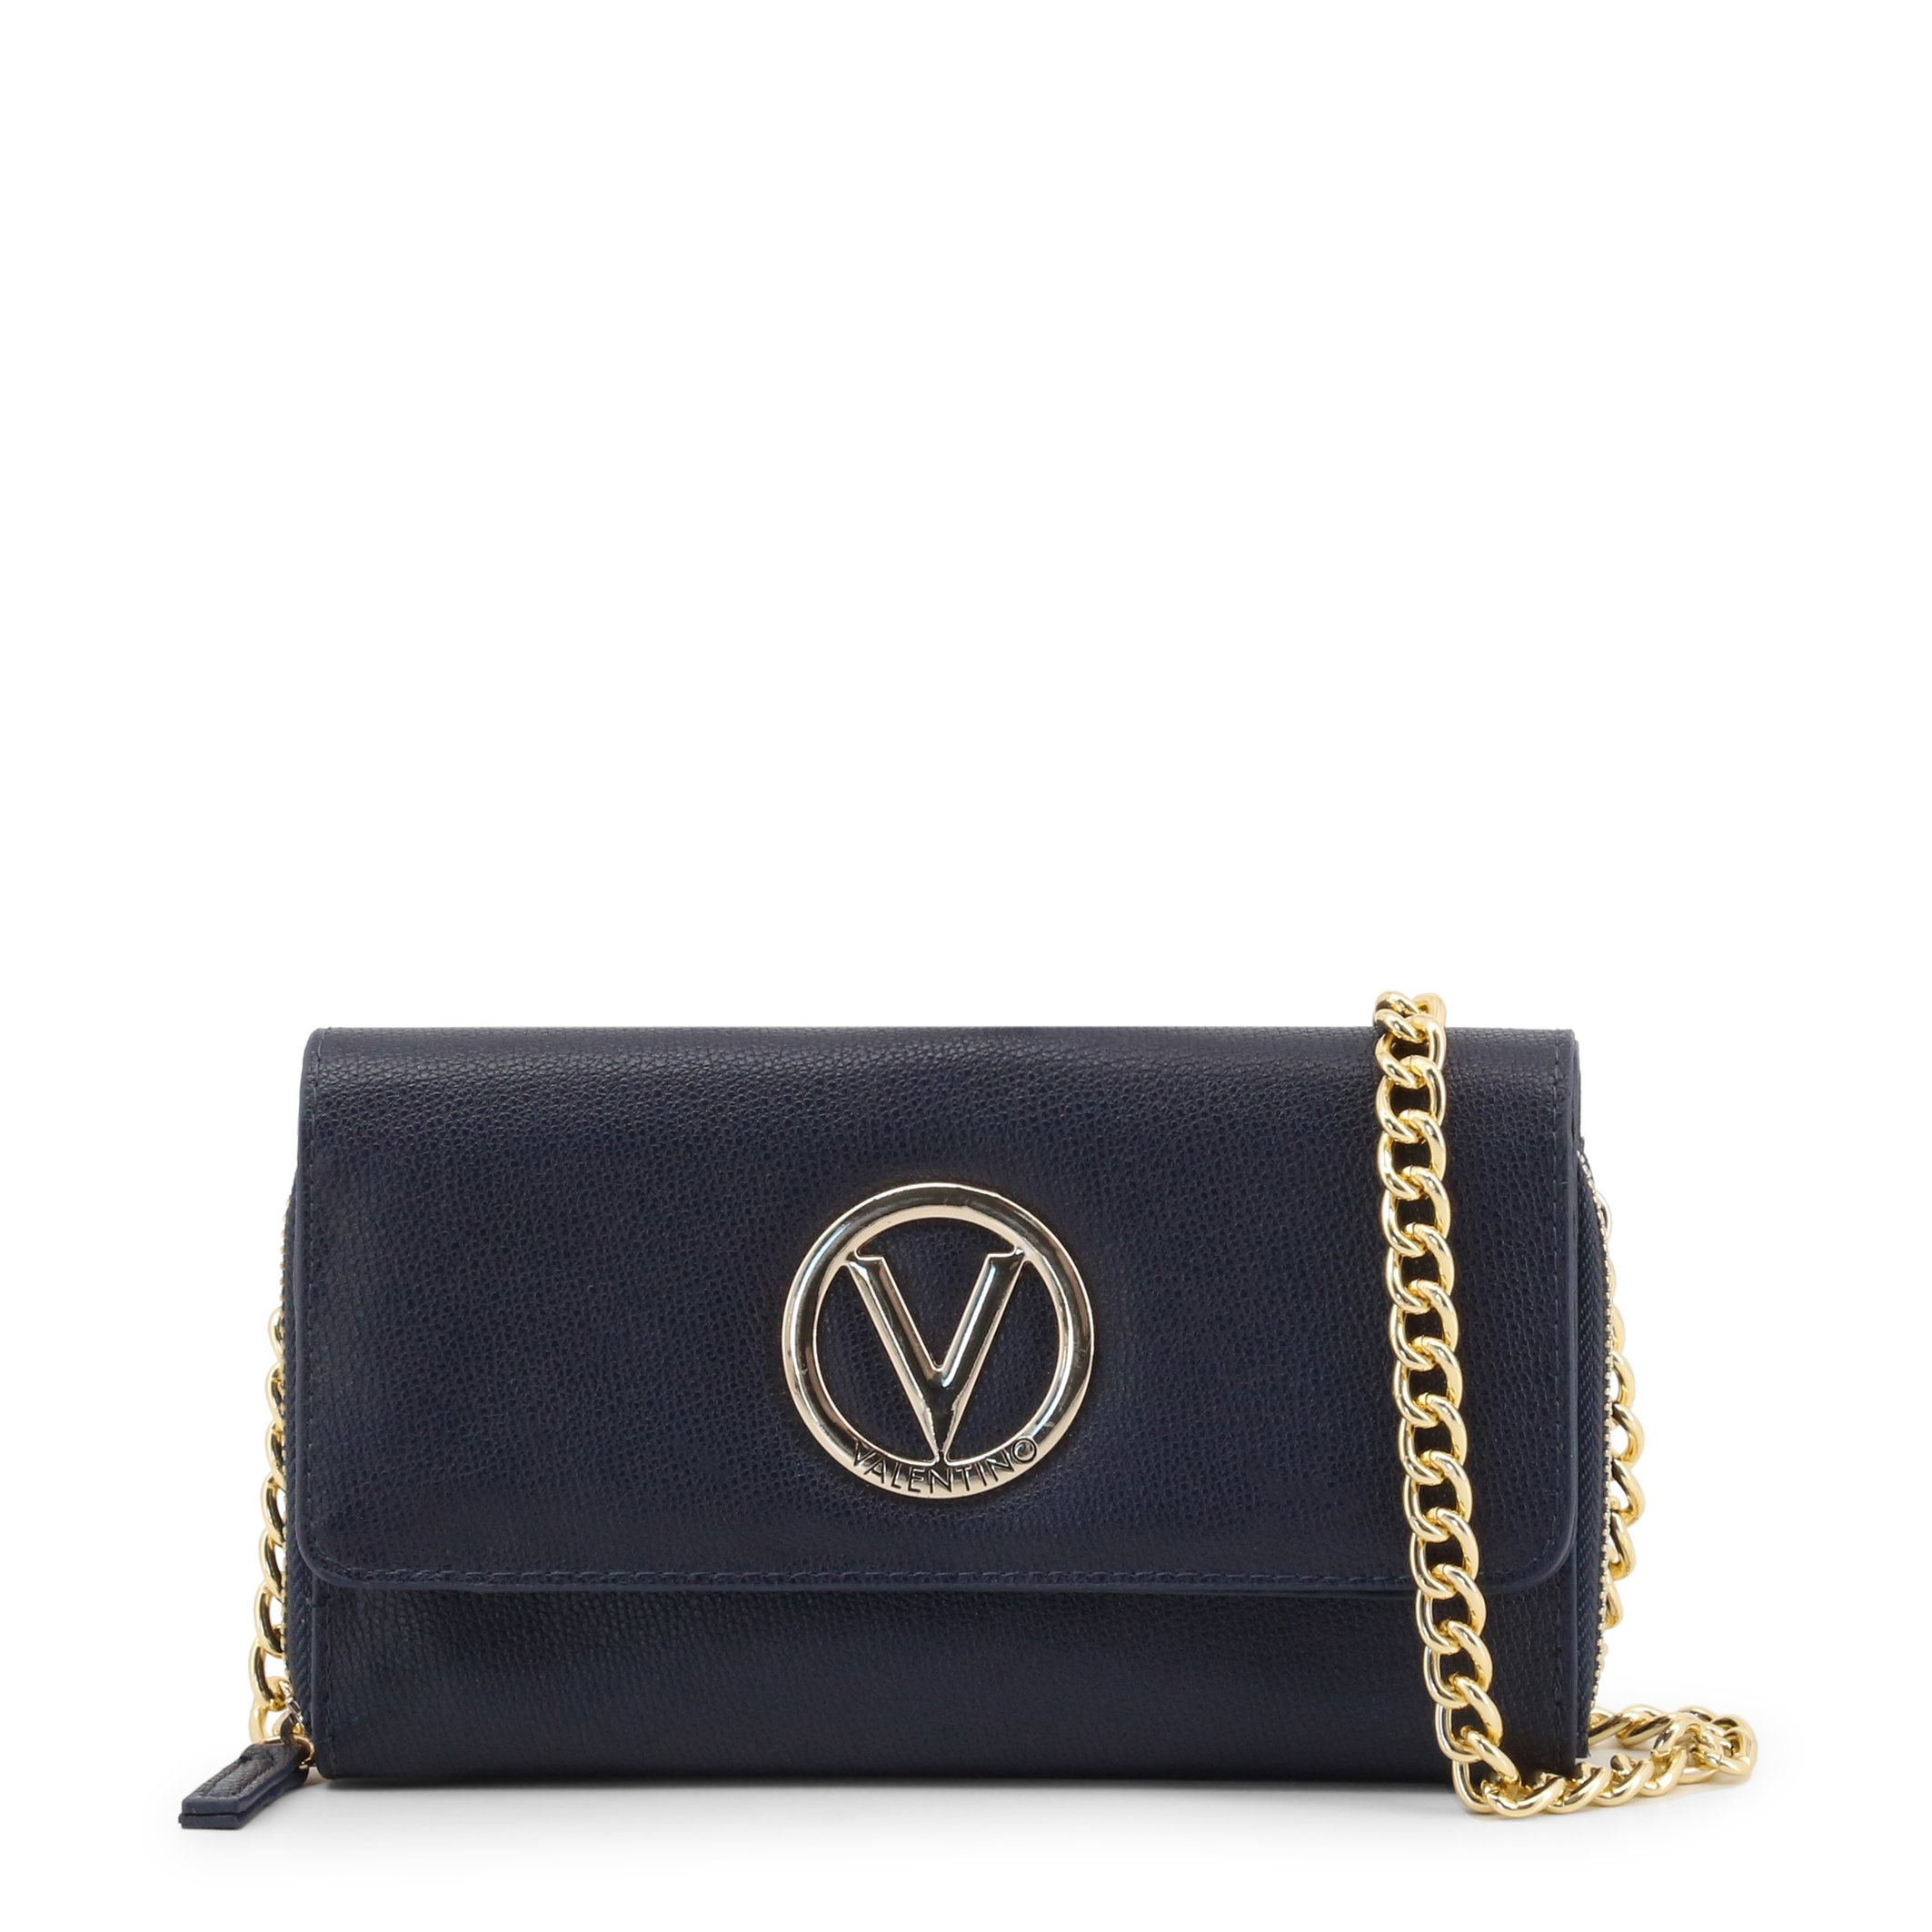 Valentino by Mario Valentino Women's Clutch Bag Various Colours SAX-VBS3JJ06 - blue NOSIZE